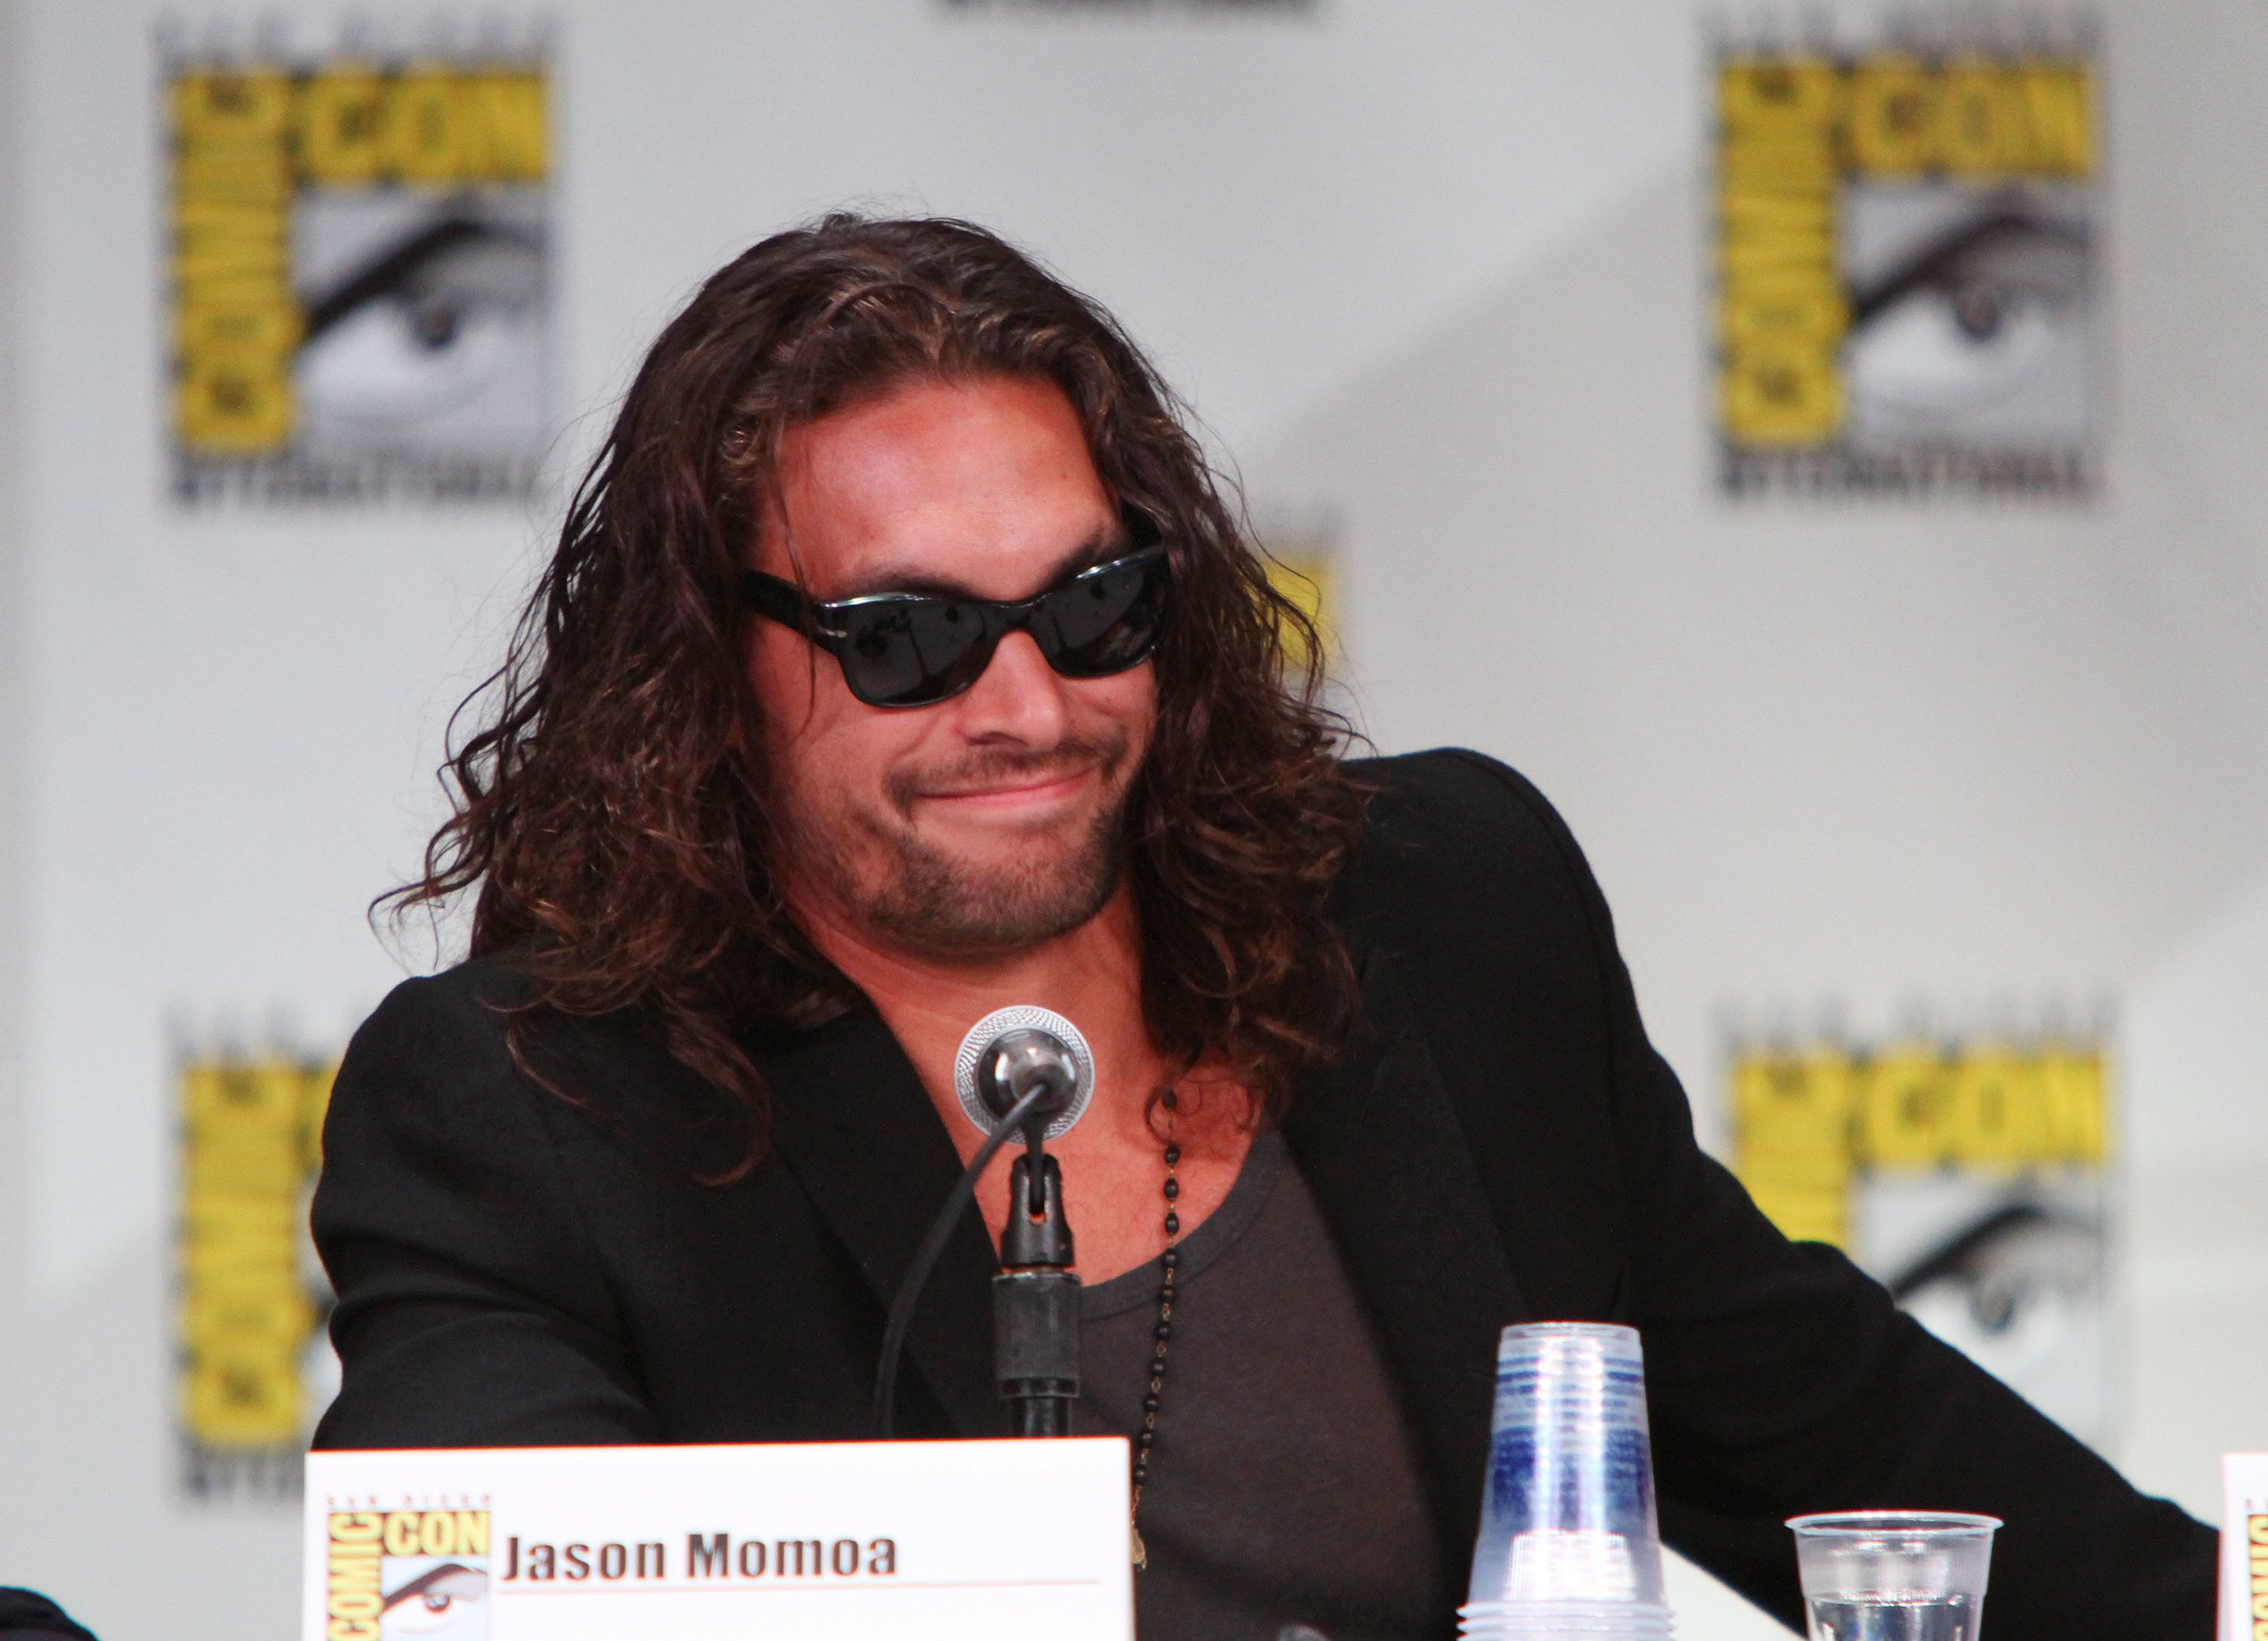 SAN DIEGO, CA - JULY 21:  Jason Momoa attends HBO's 'Game Of Thrones' Panel At Comic-Con 2011 on July 21, 2011 in San Diego, California.  (Photo by FilmMagic/FilmMagic)